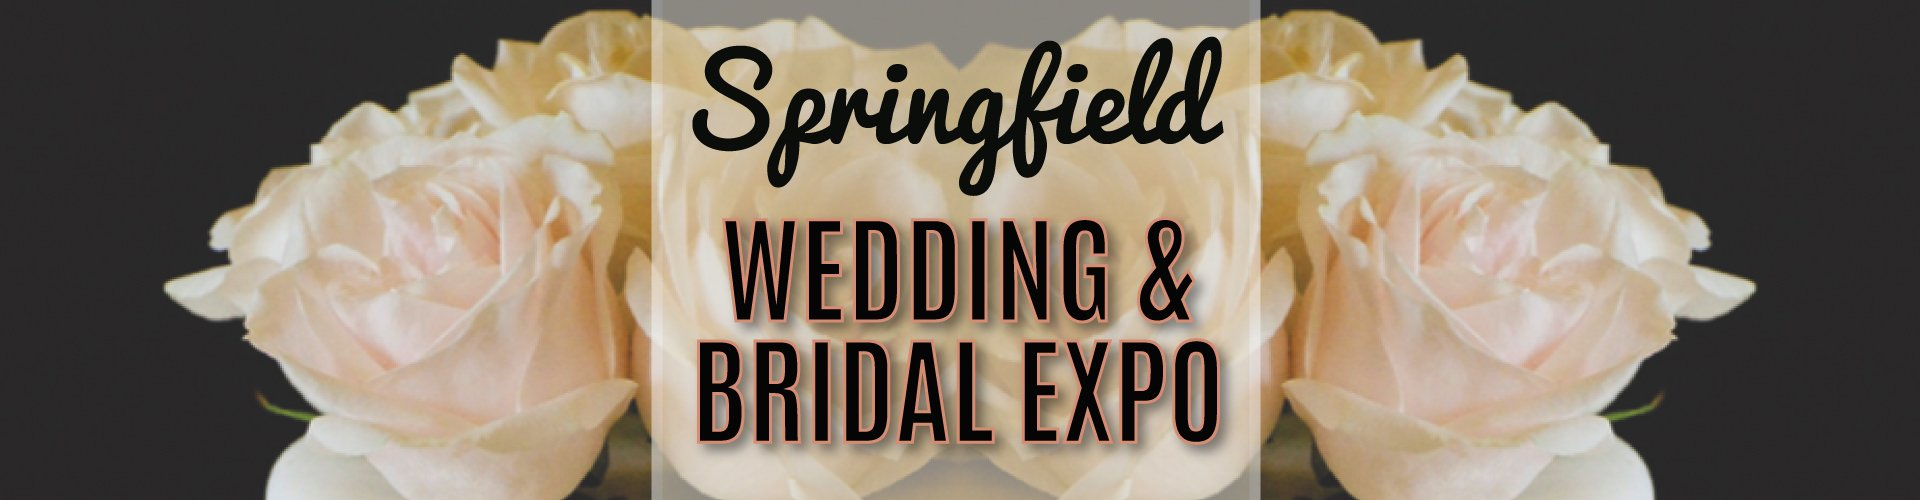 2020 Springfield Wedding & Bridal Expo | Jenks Productions